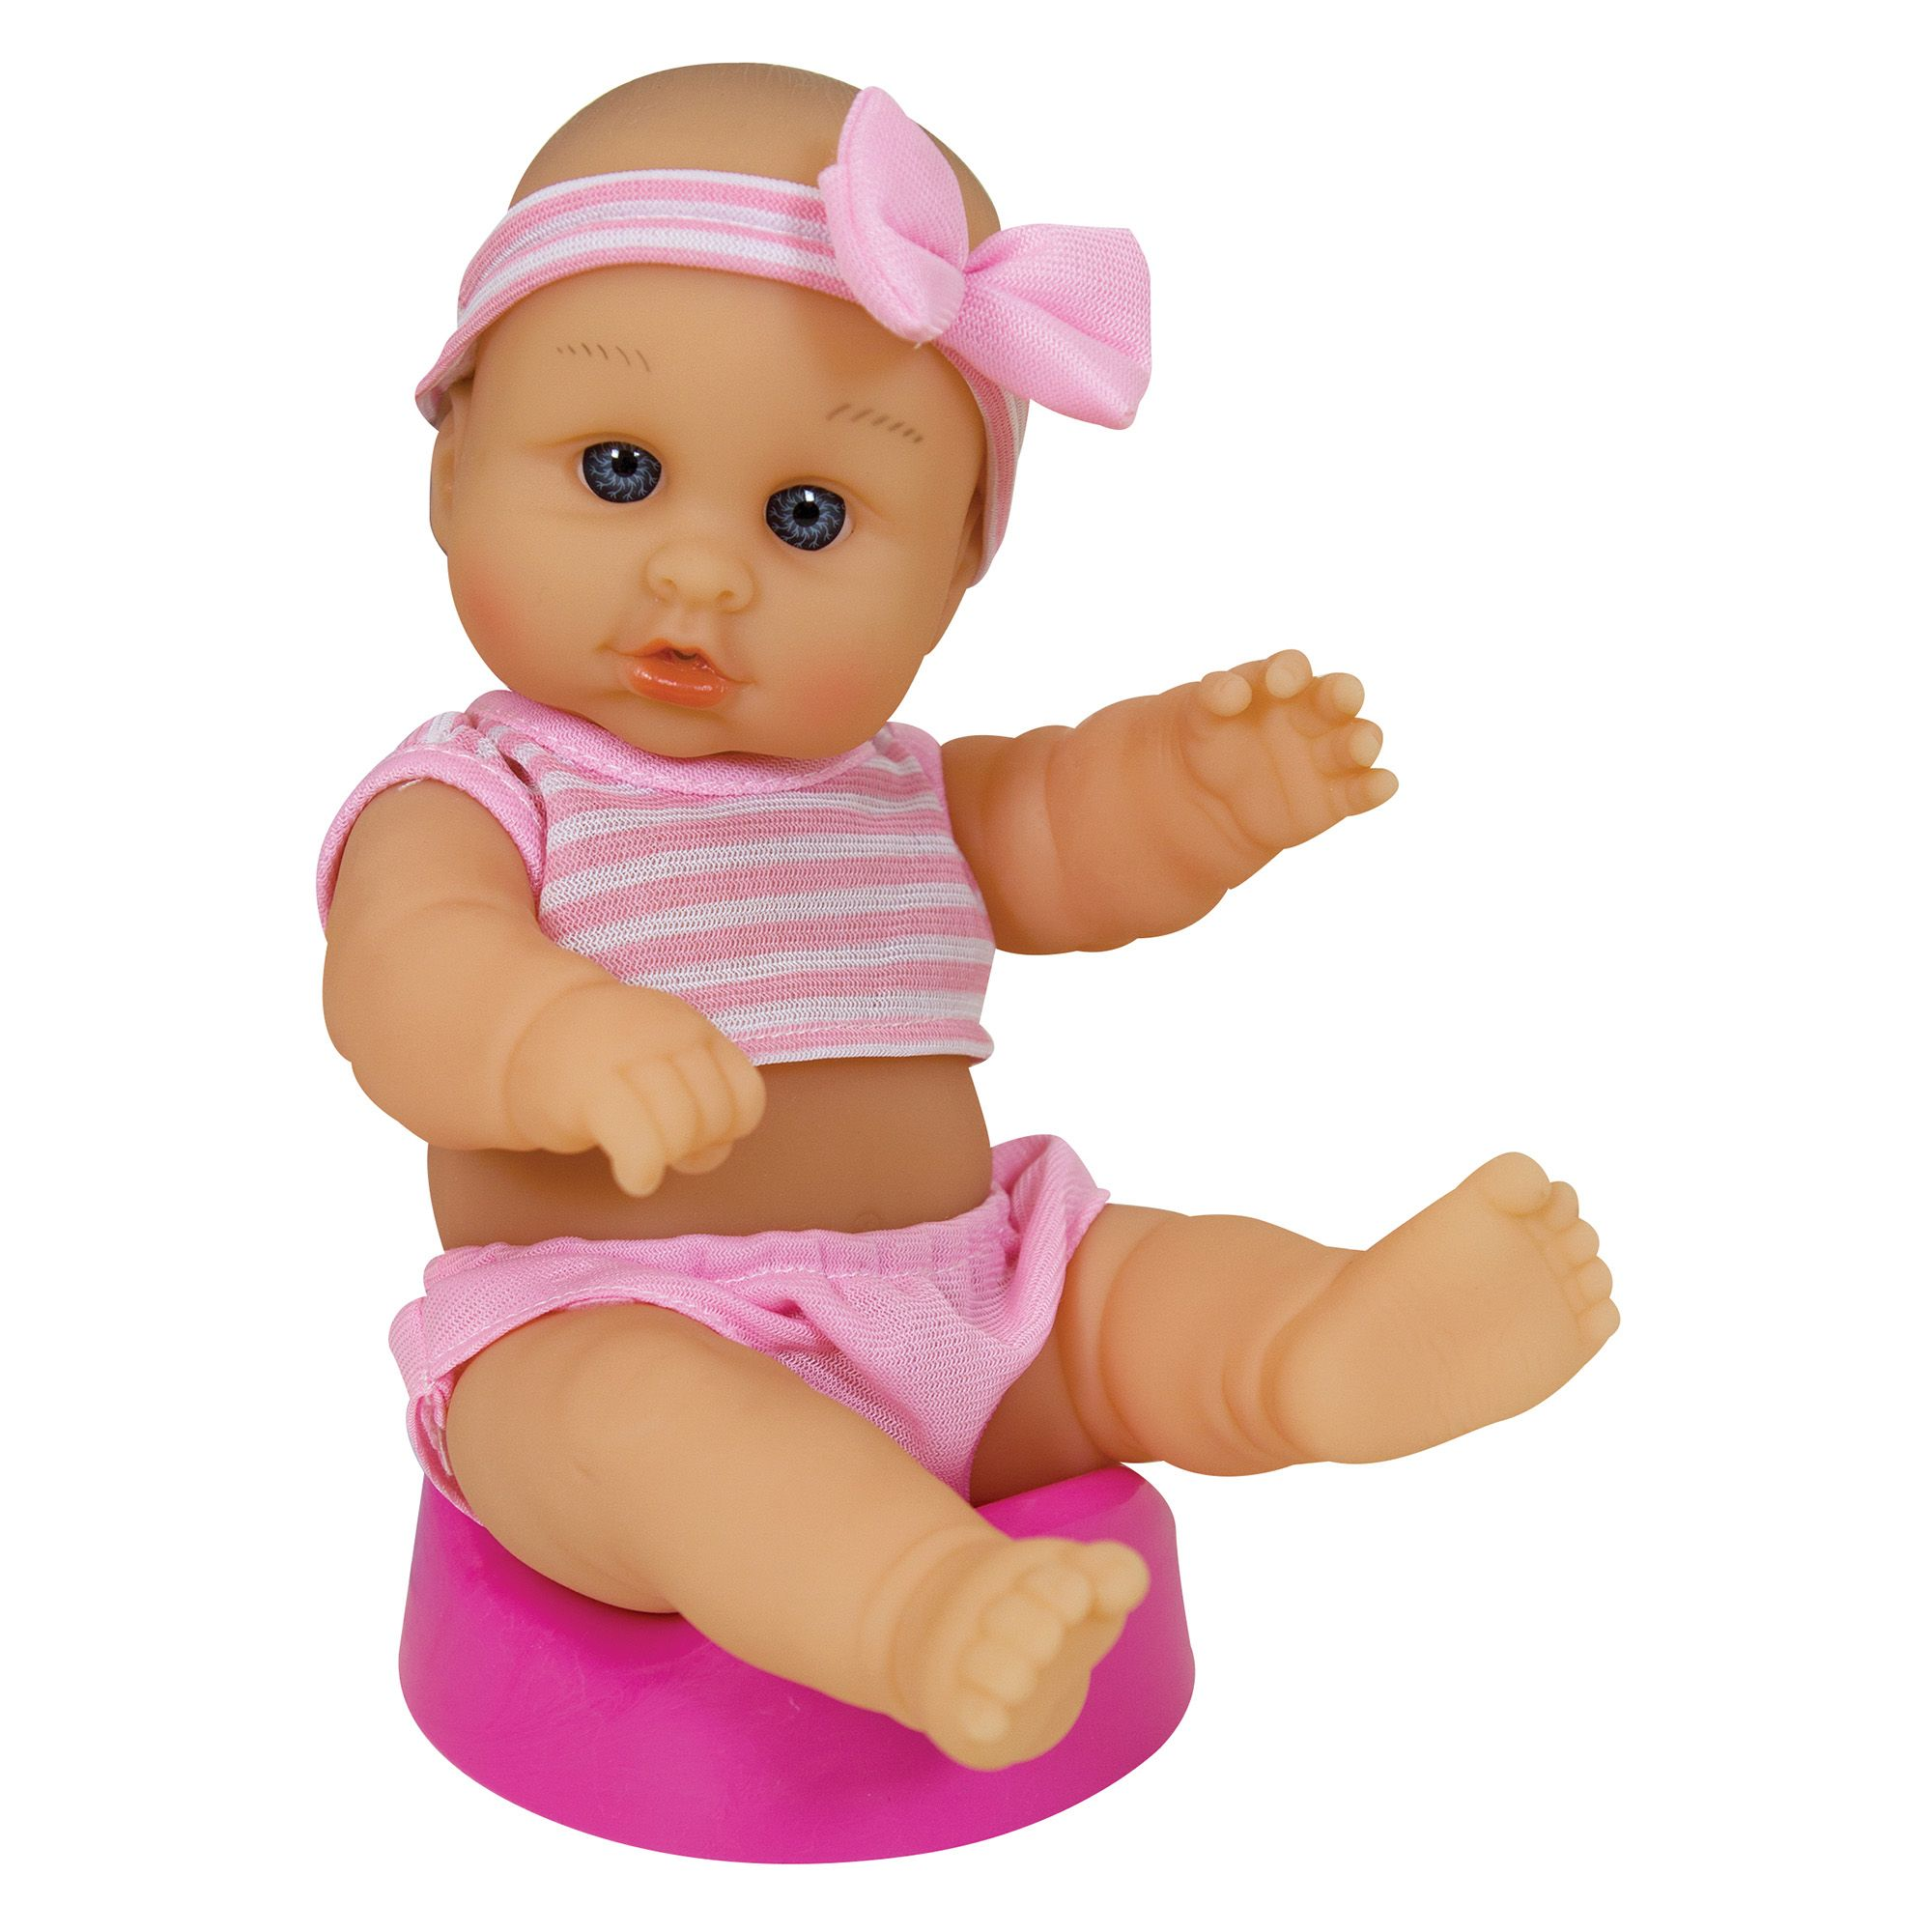 Image of Baby Ellie & Friends Baby Doll & Potty Set